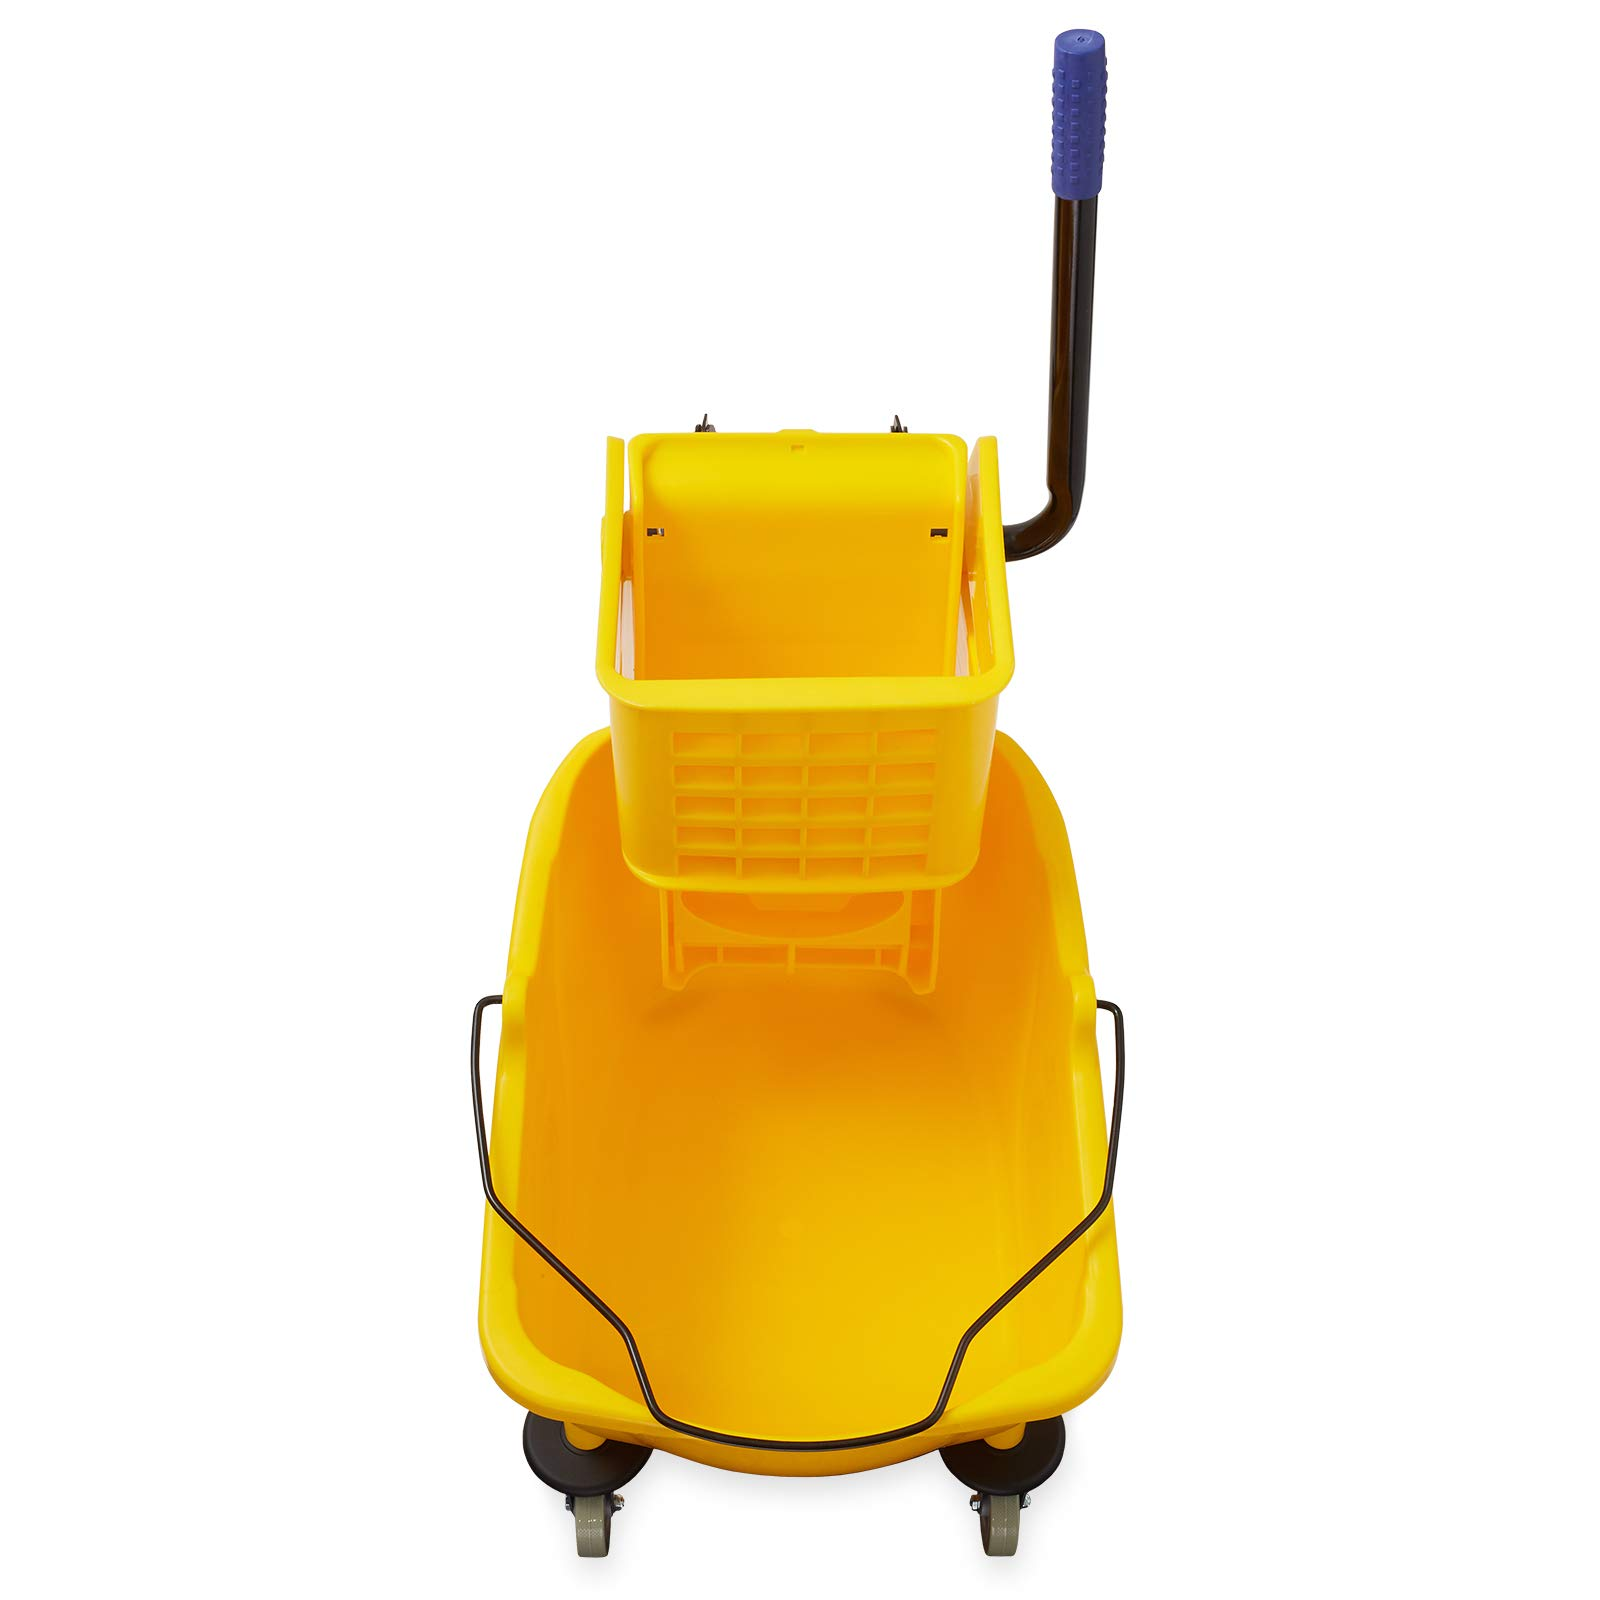 Dryser Commercial Mop Bucket with Side Press Wringer, 33 Quart, Yellow by Dryser (Image #3)